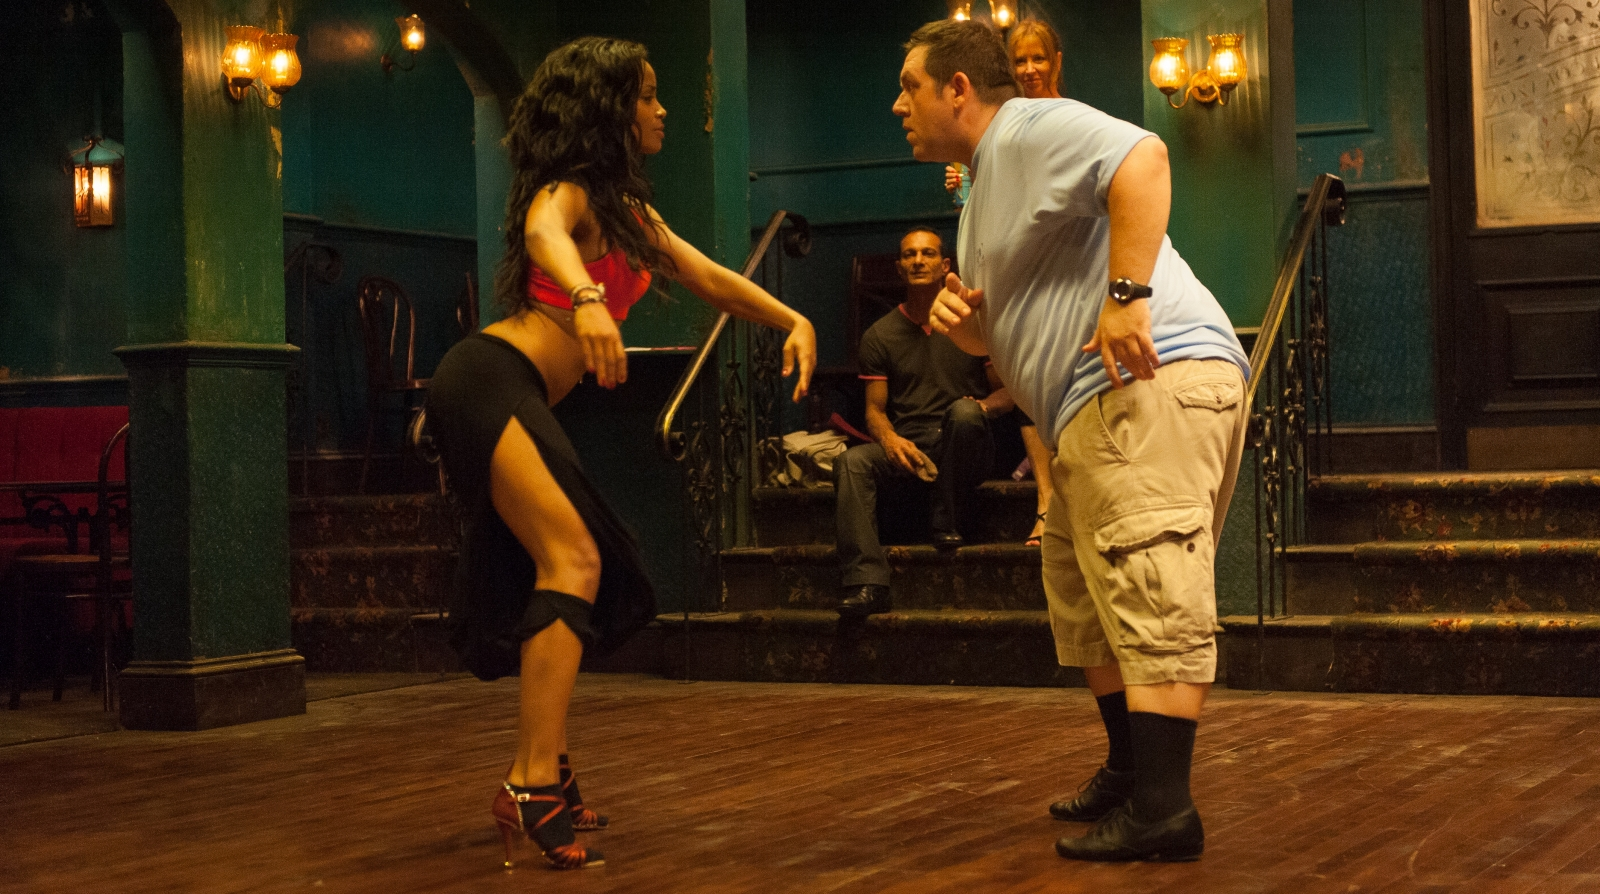 Cuban Fury - Best Valentine's Day films